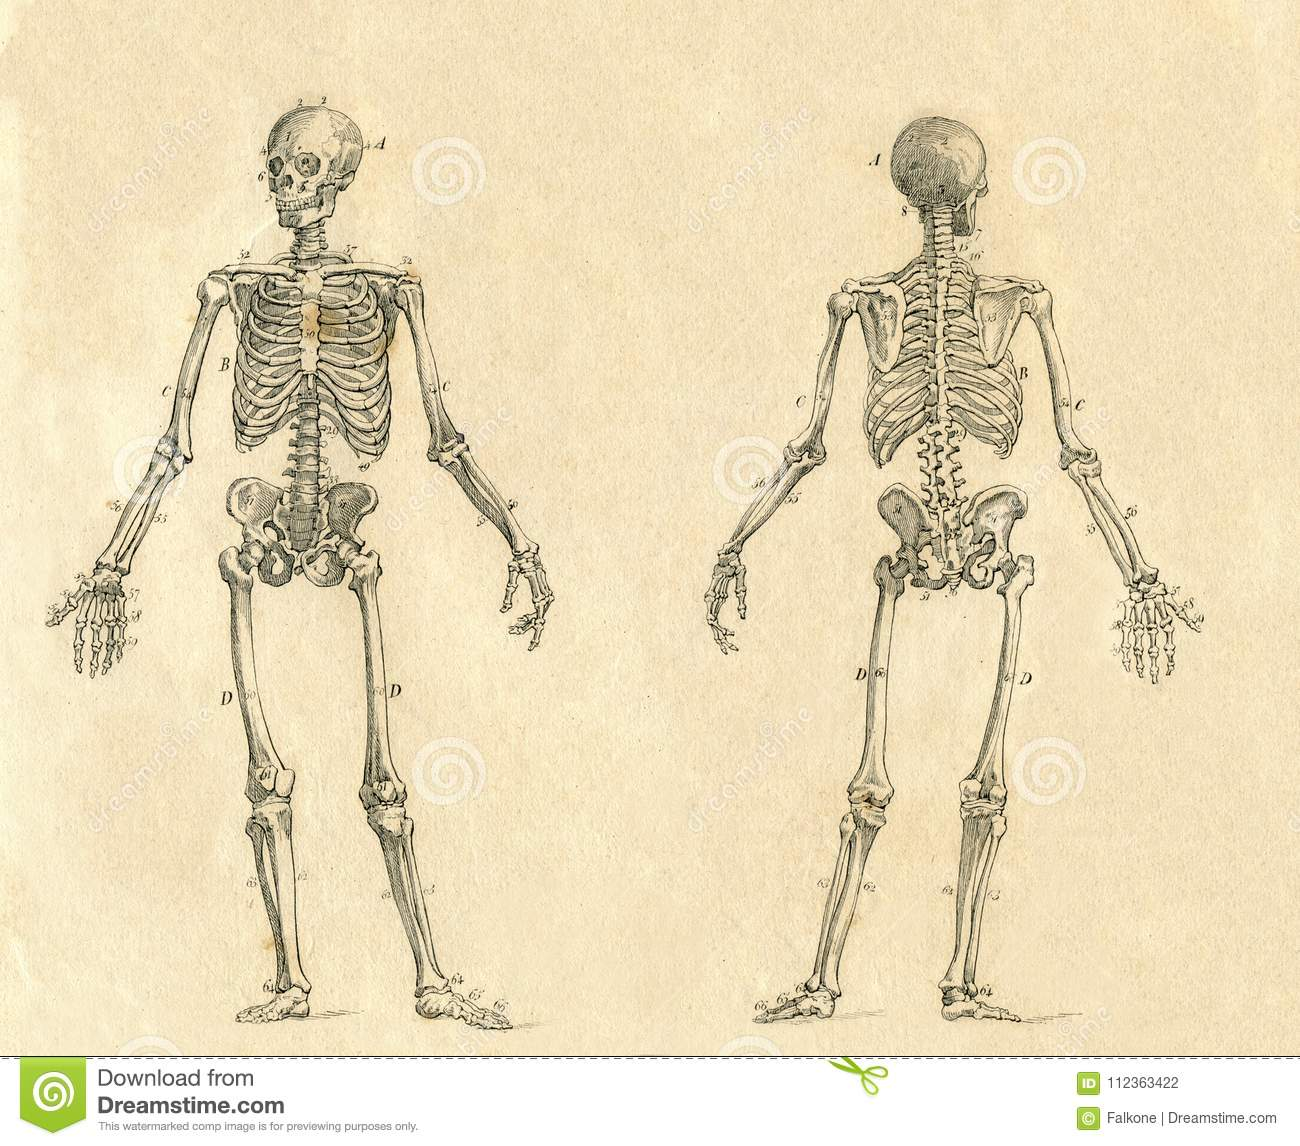 Human Skeleton Vintage Drawing Engraved Illustration Stock